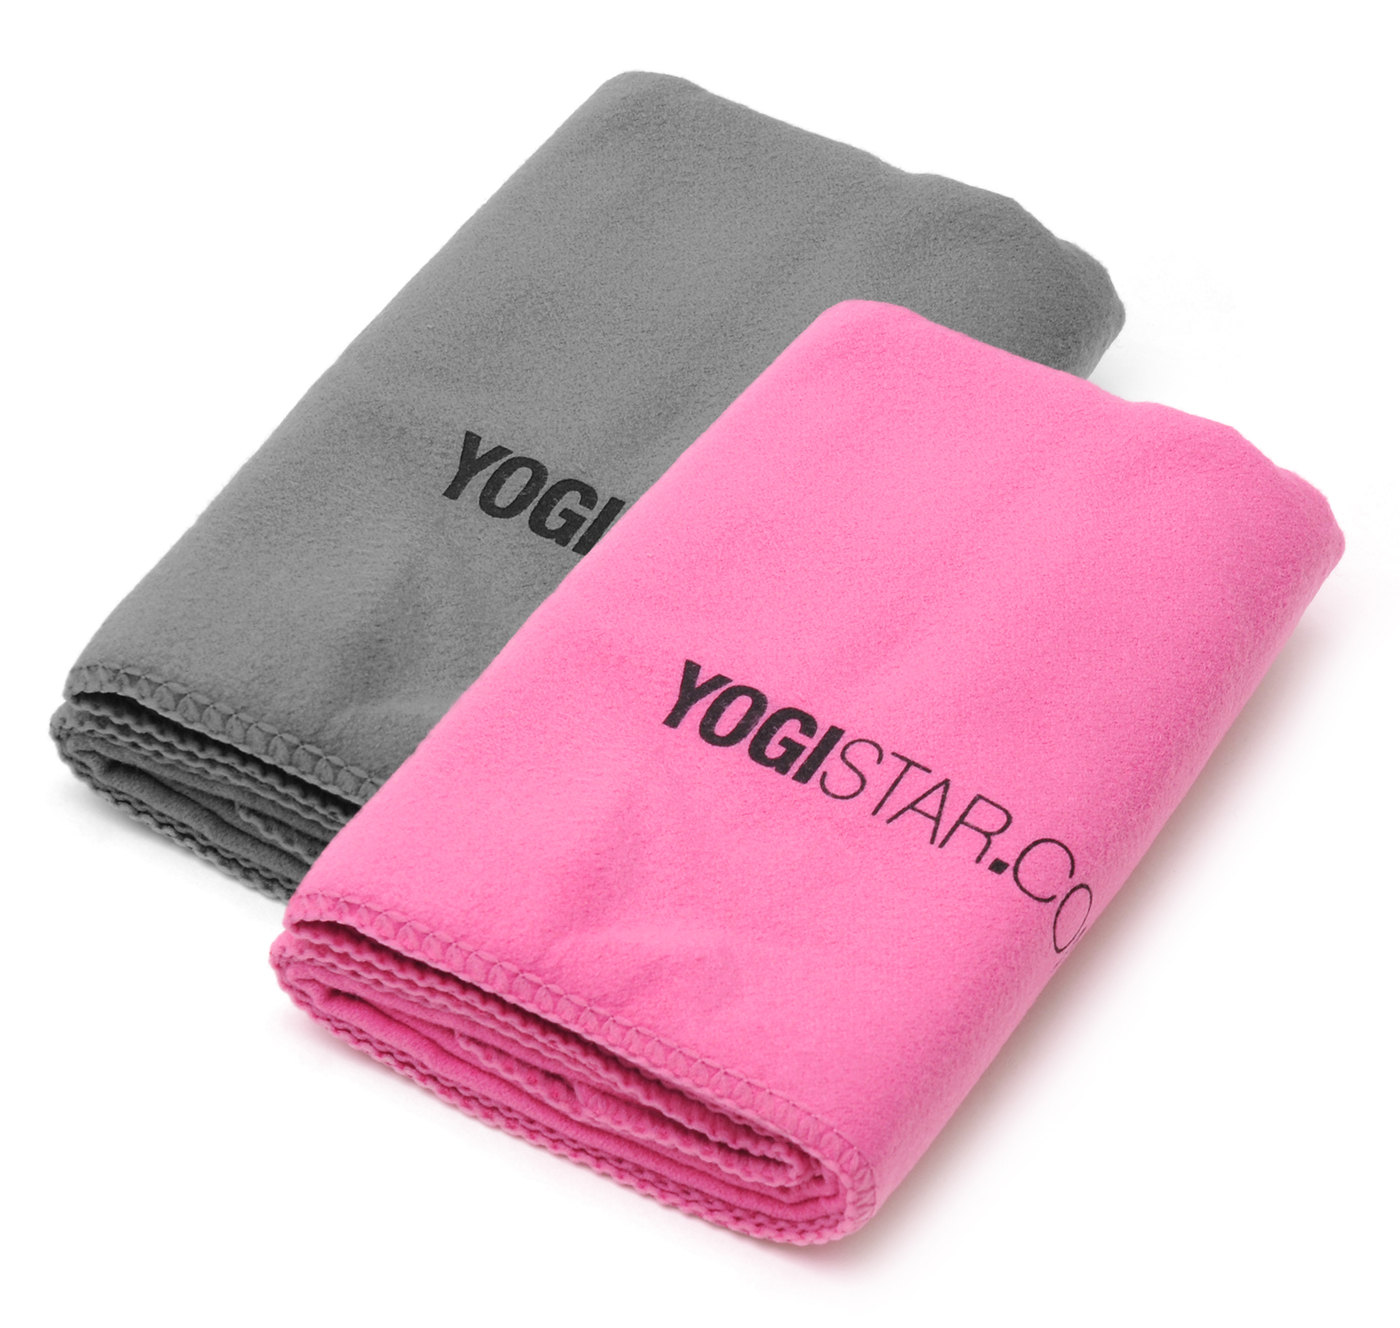 Yoga Cloth yogi mini towel